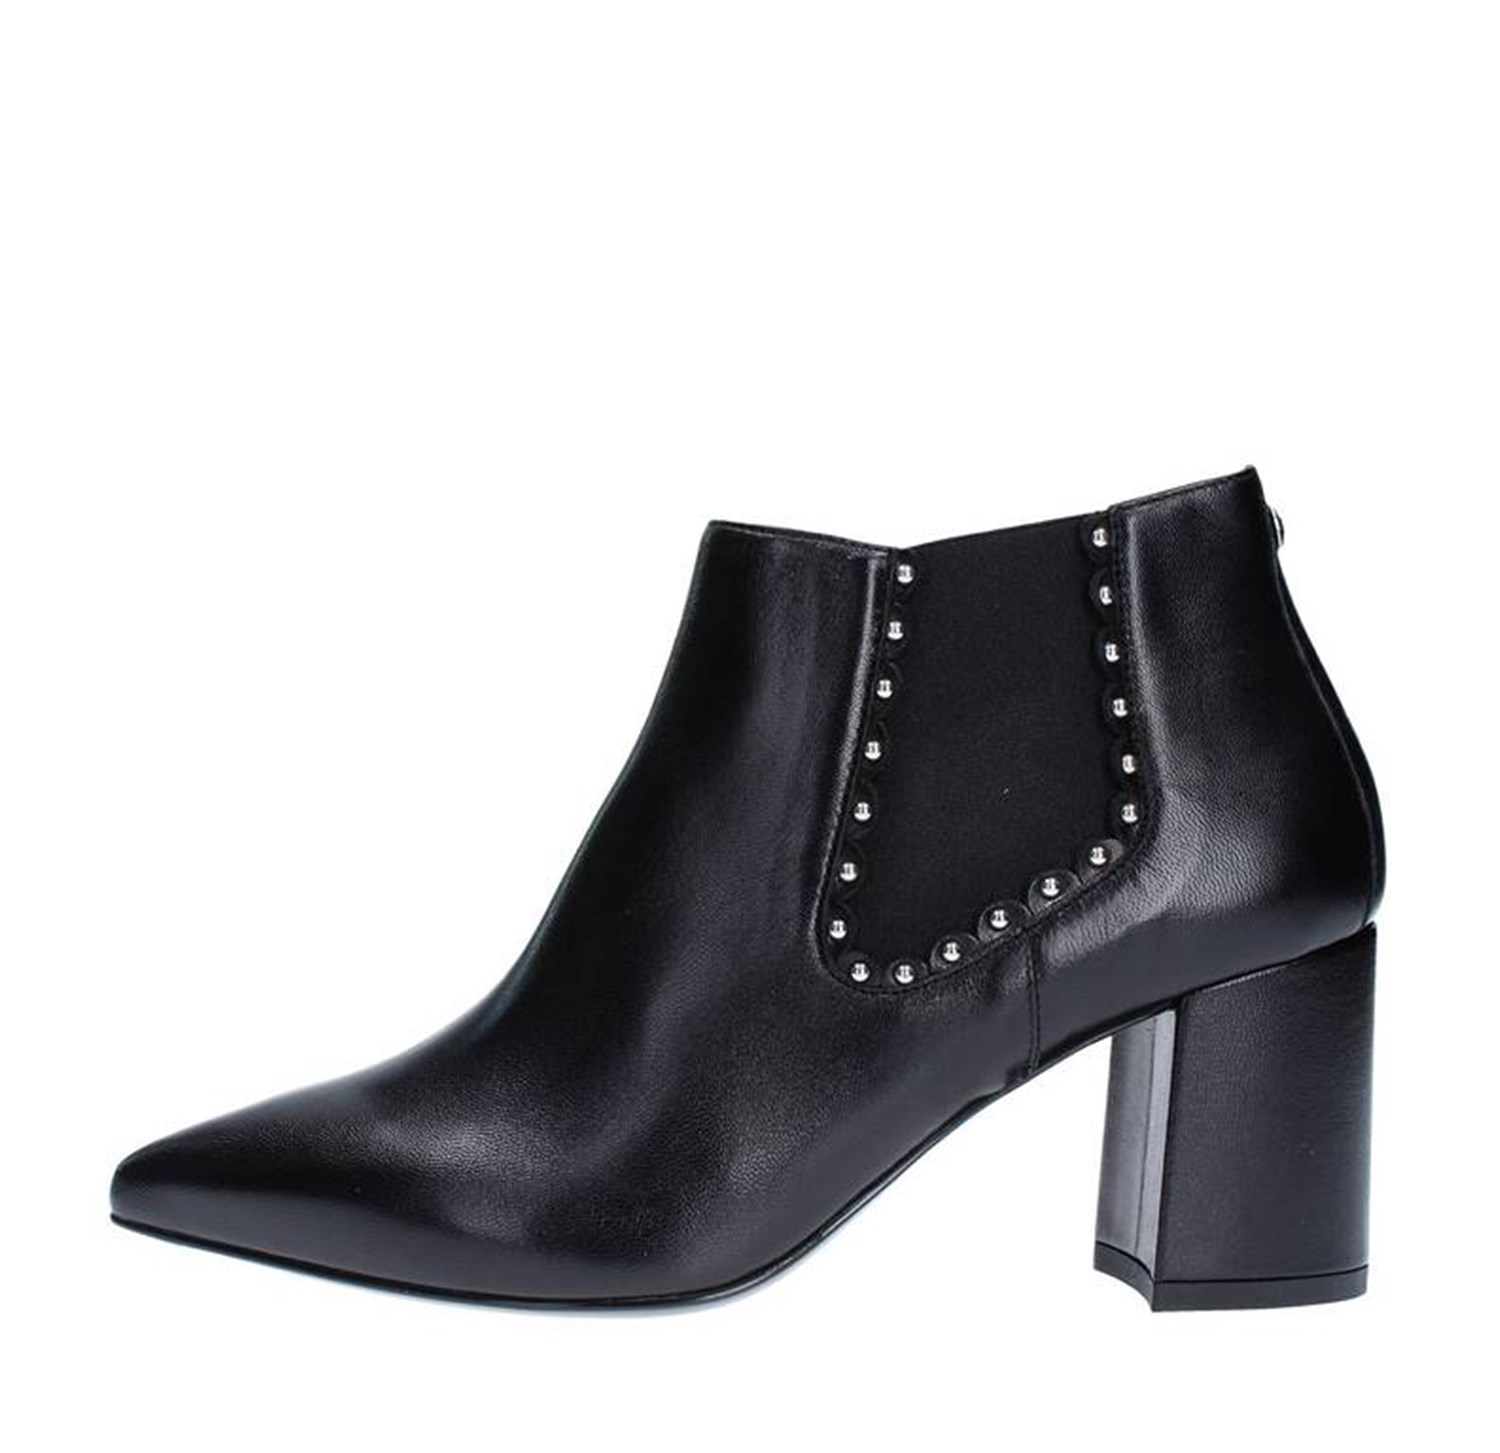 Nero Giardini Shoes Woman boots BLACK A806910DE